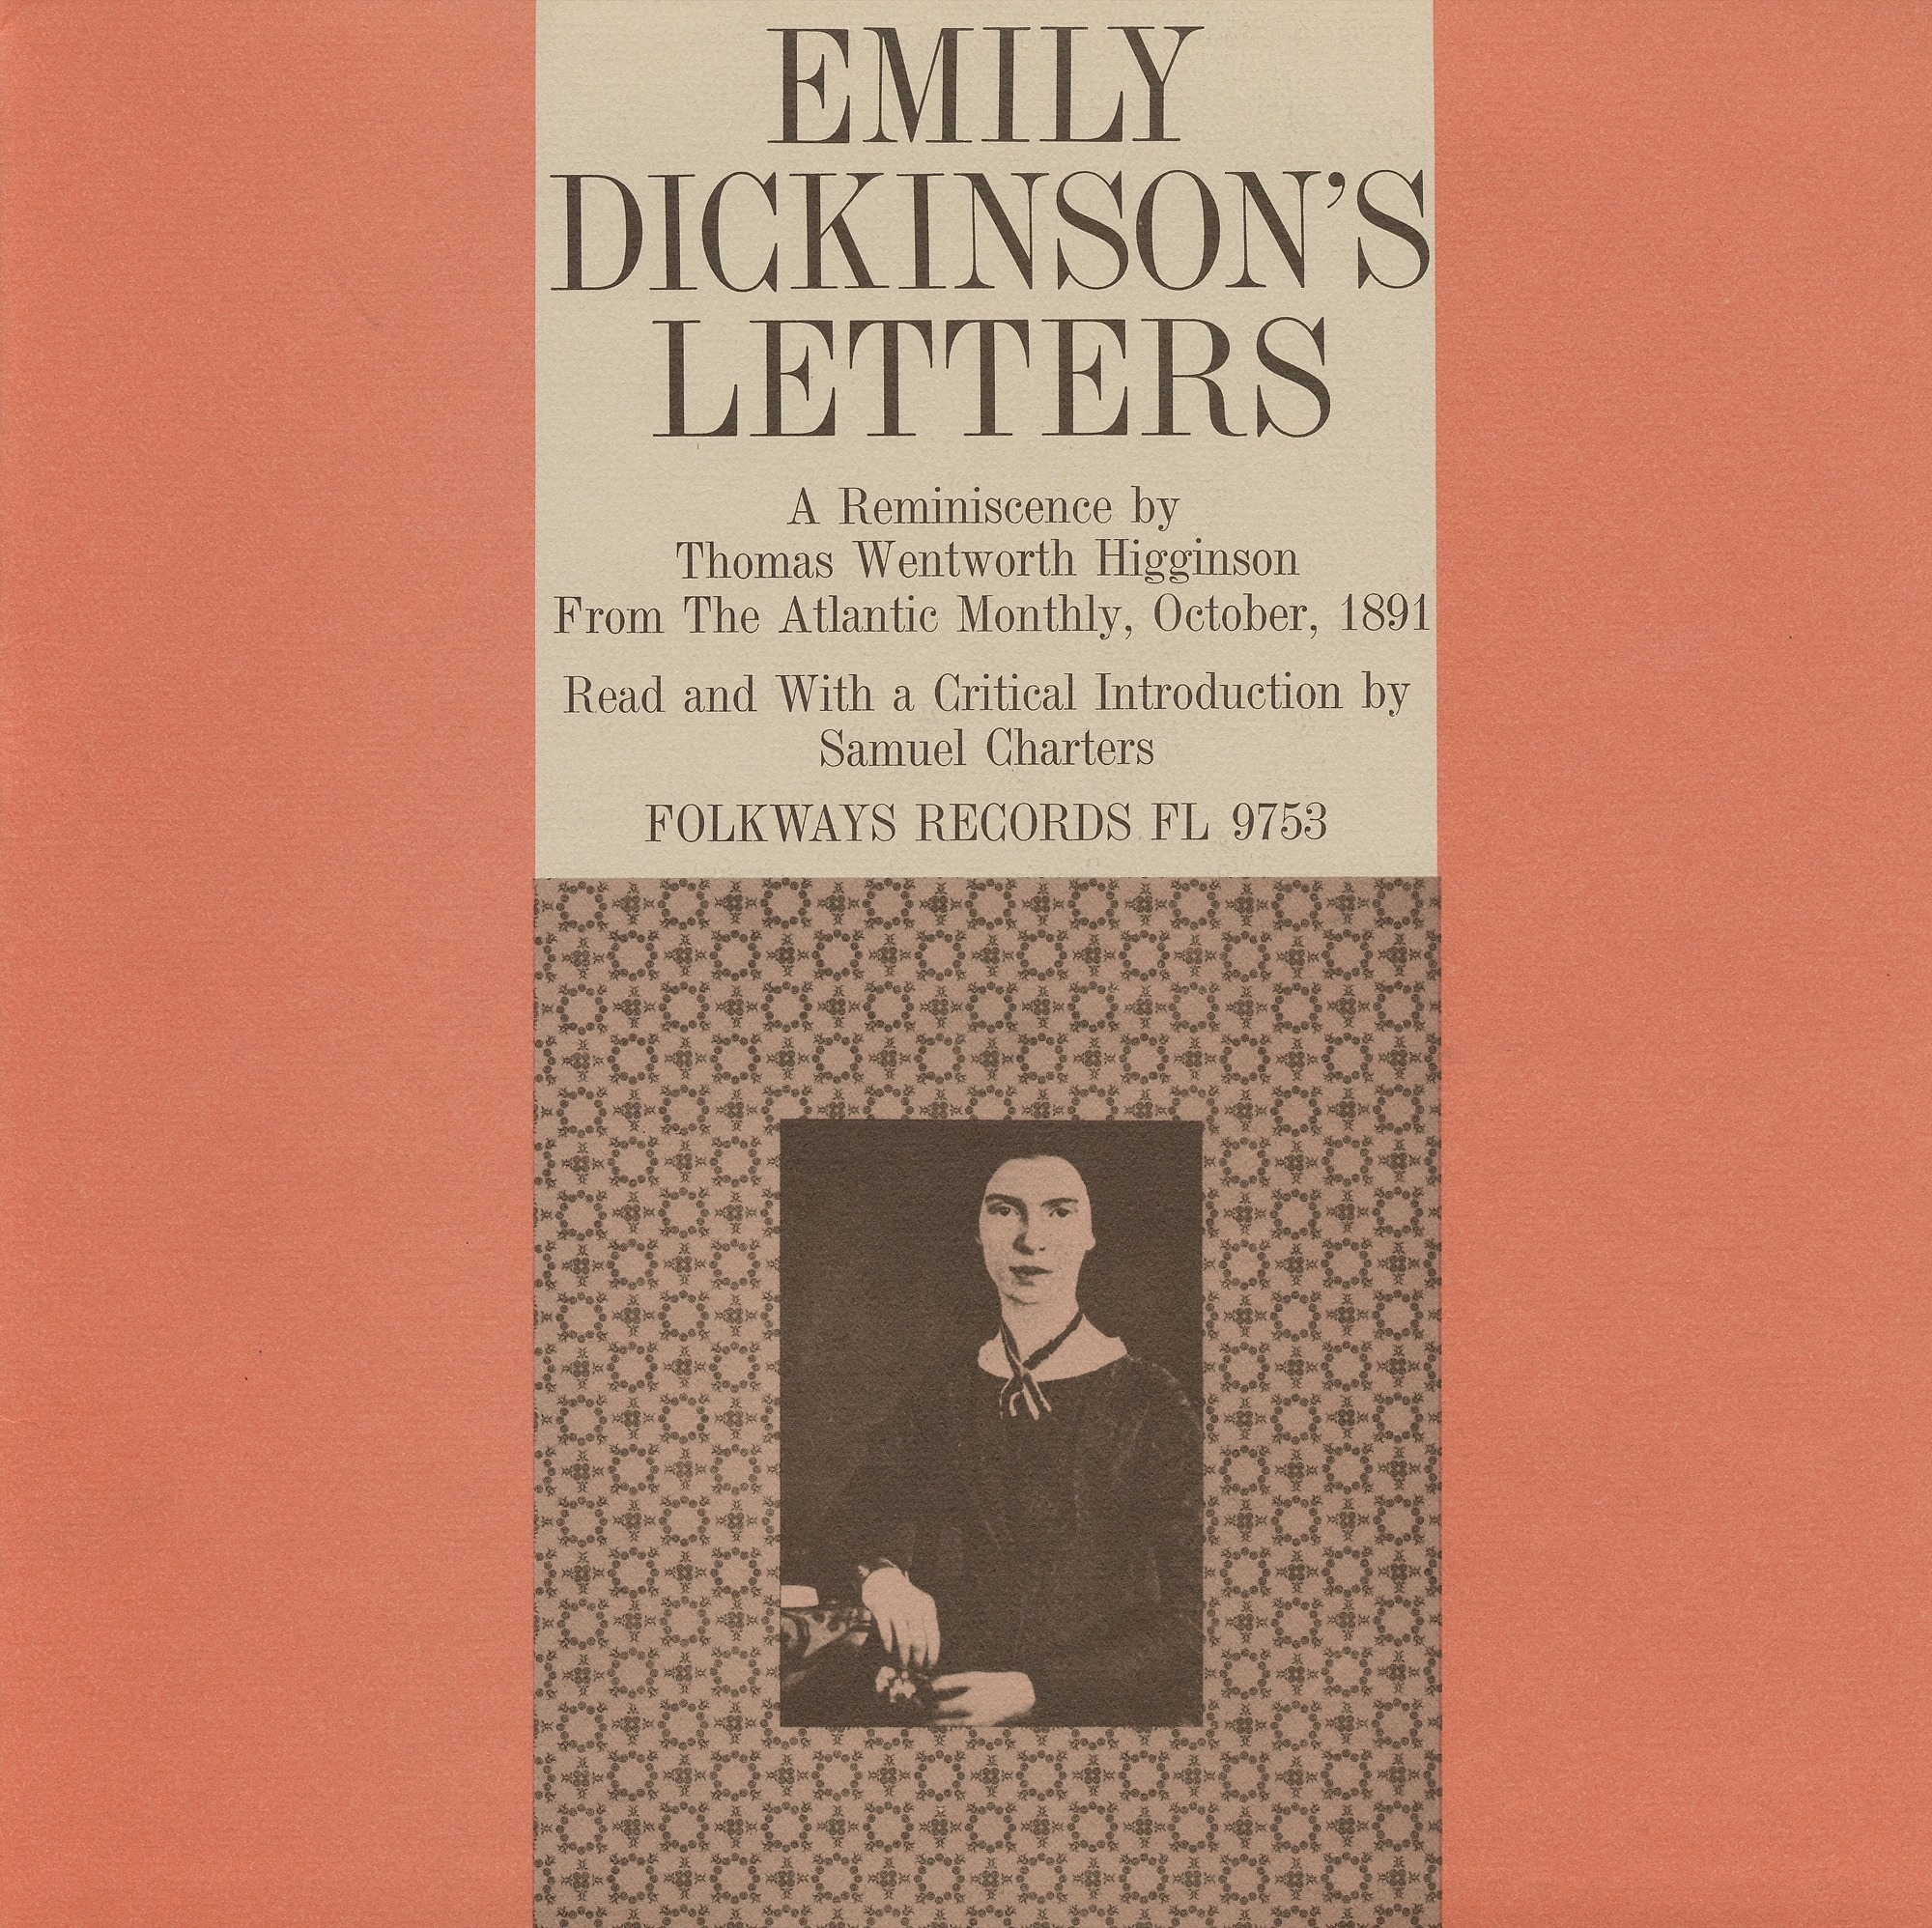 images for The letters of Emily Dickinson sound recording : a reminiscence by Thomas Wentworth Higginson from The Atlantic Monthly, October 1891 / read and with a critical introduction by Samuel Charters